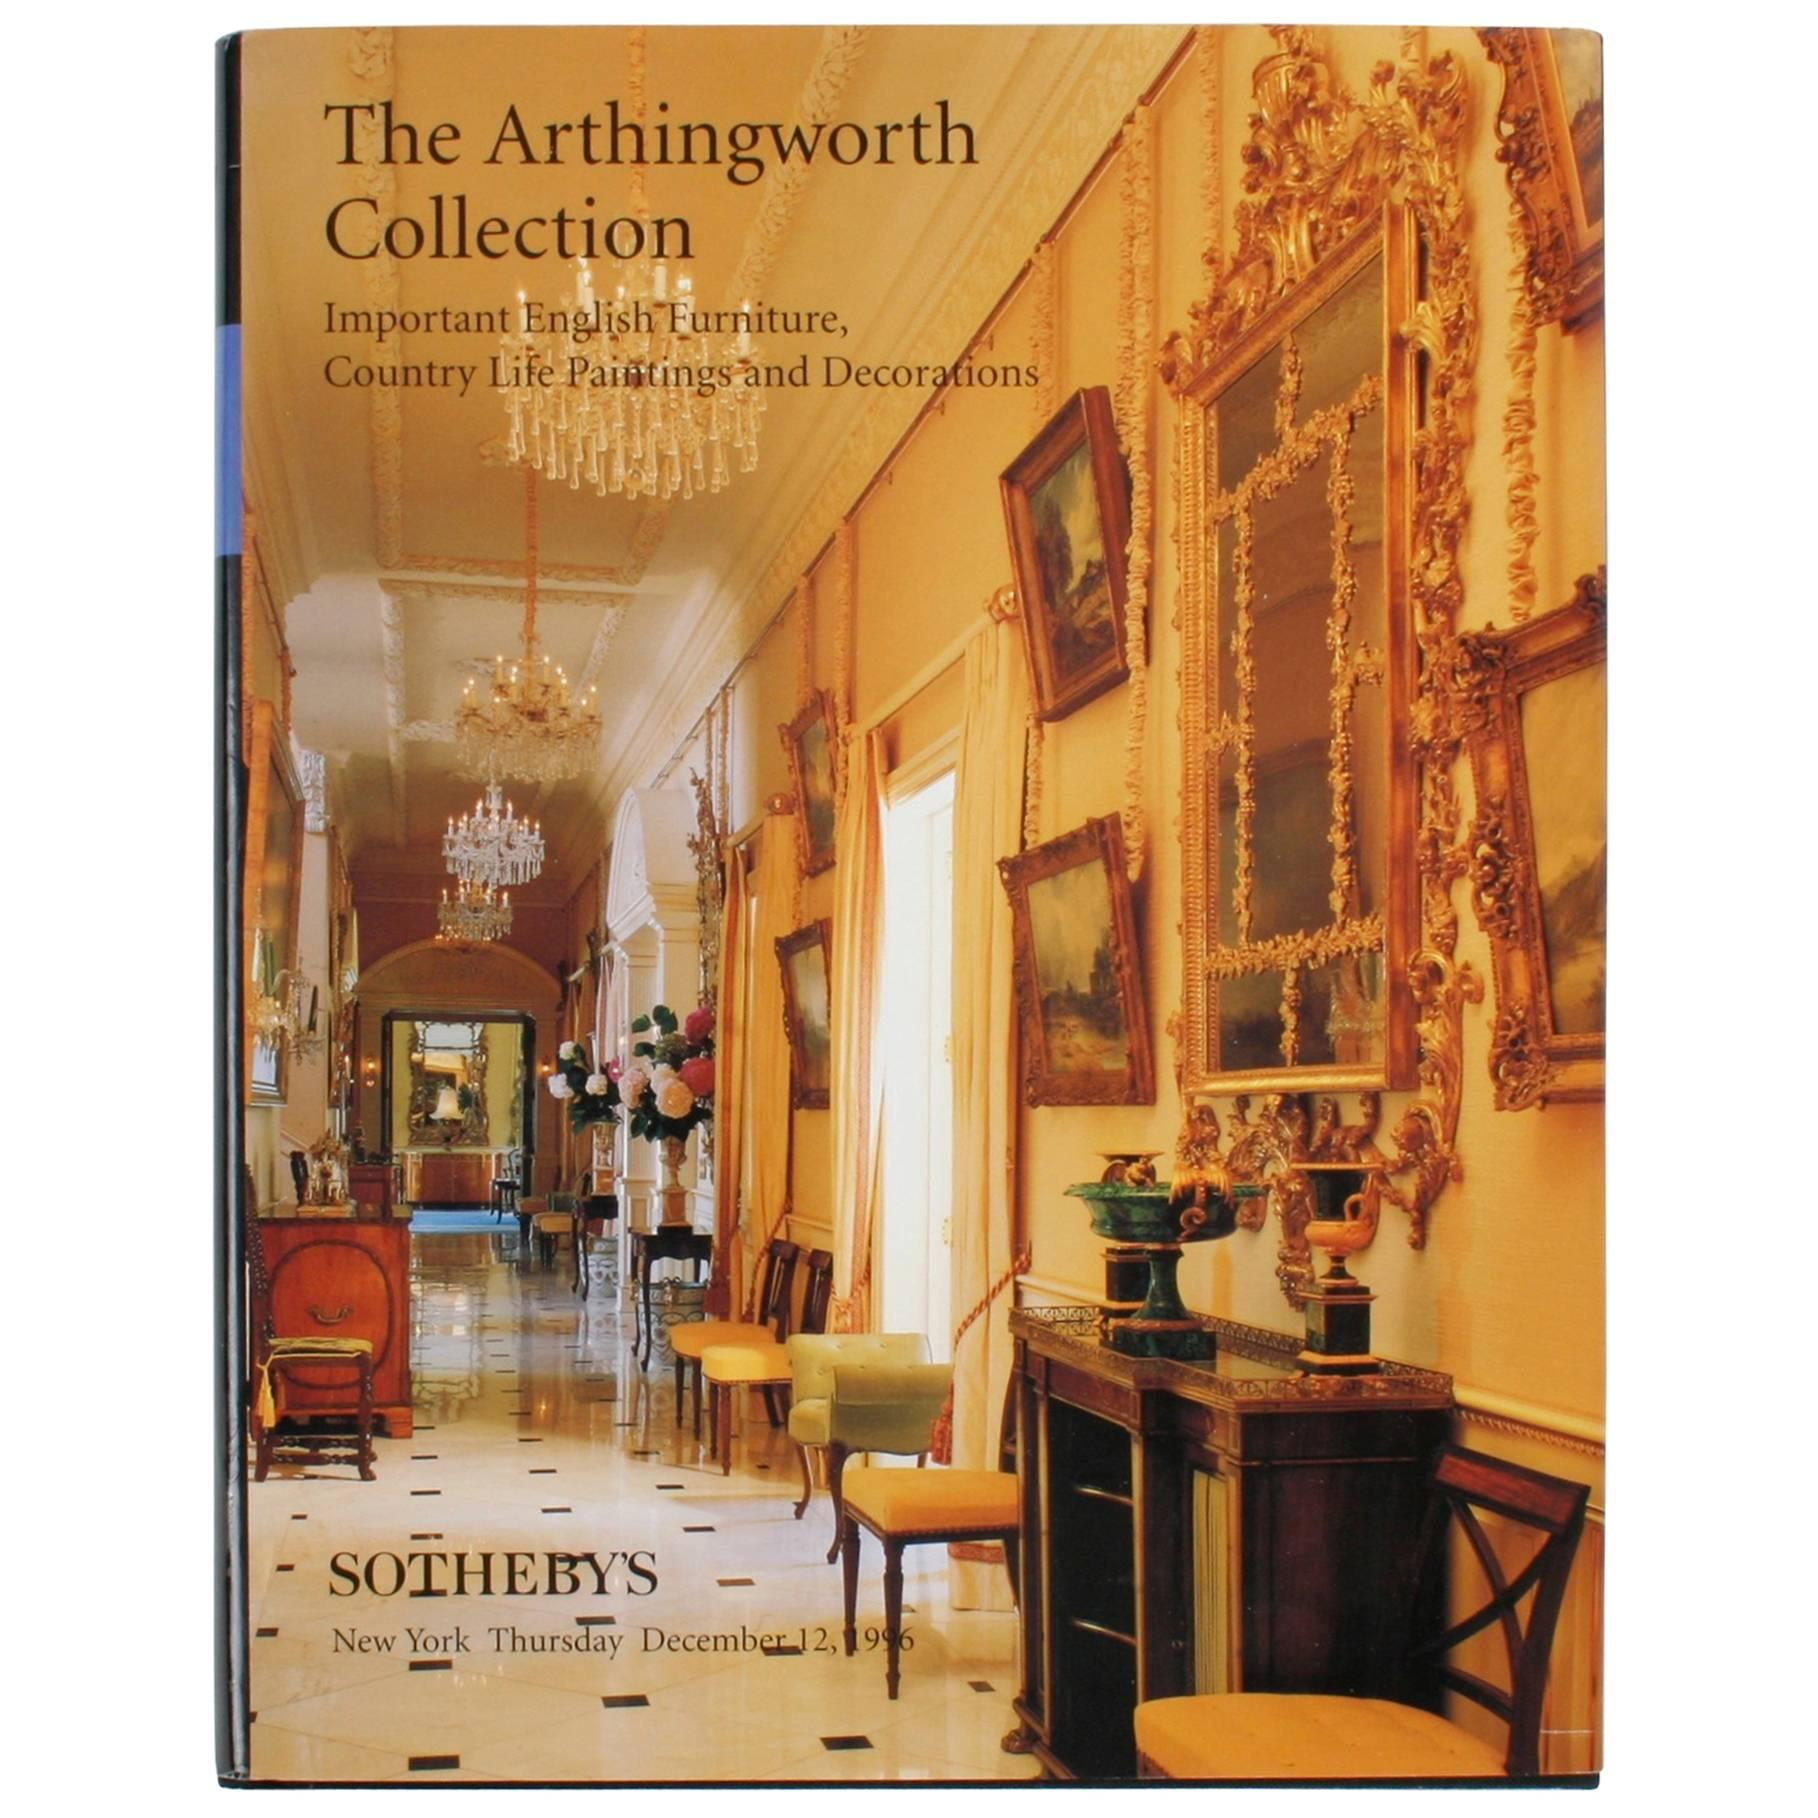 Sotheby's, the Arthingworth Collection, Important English Furniture